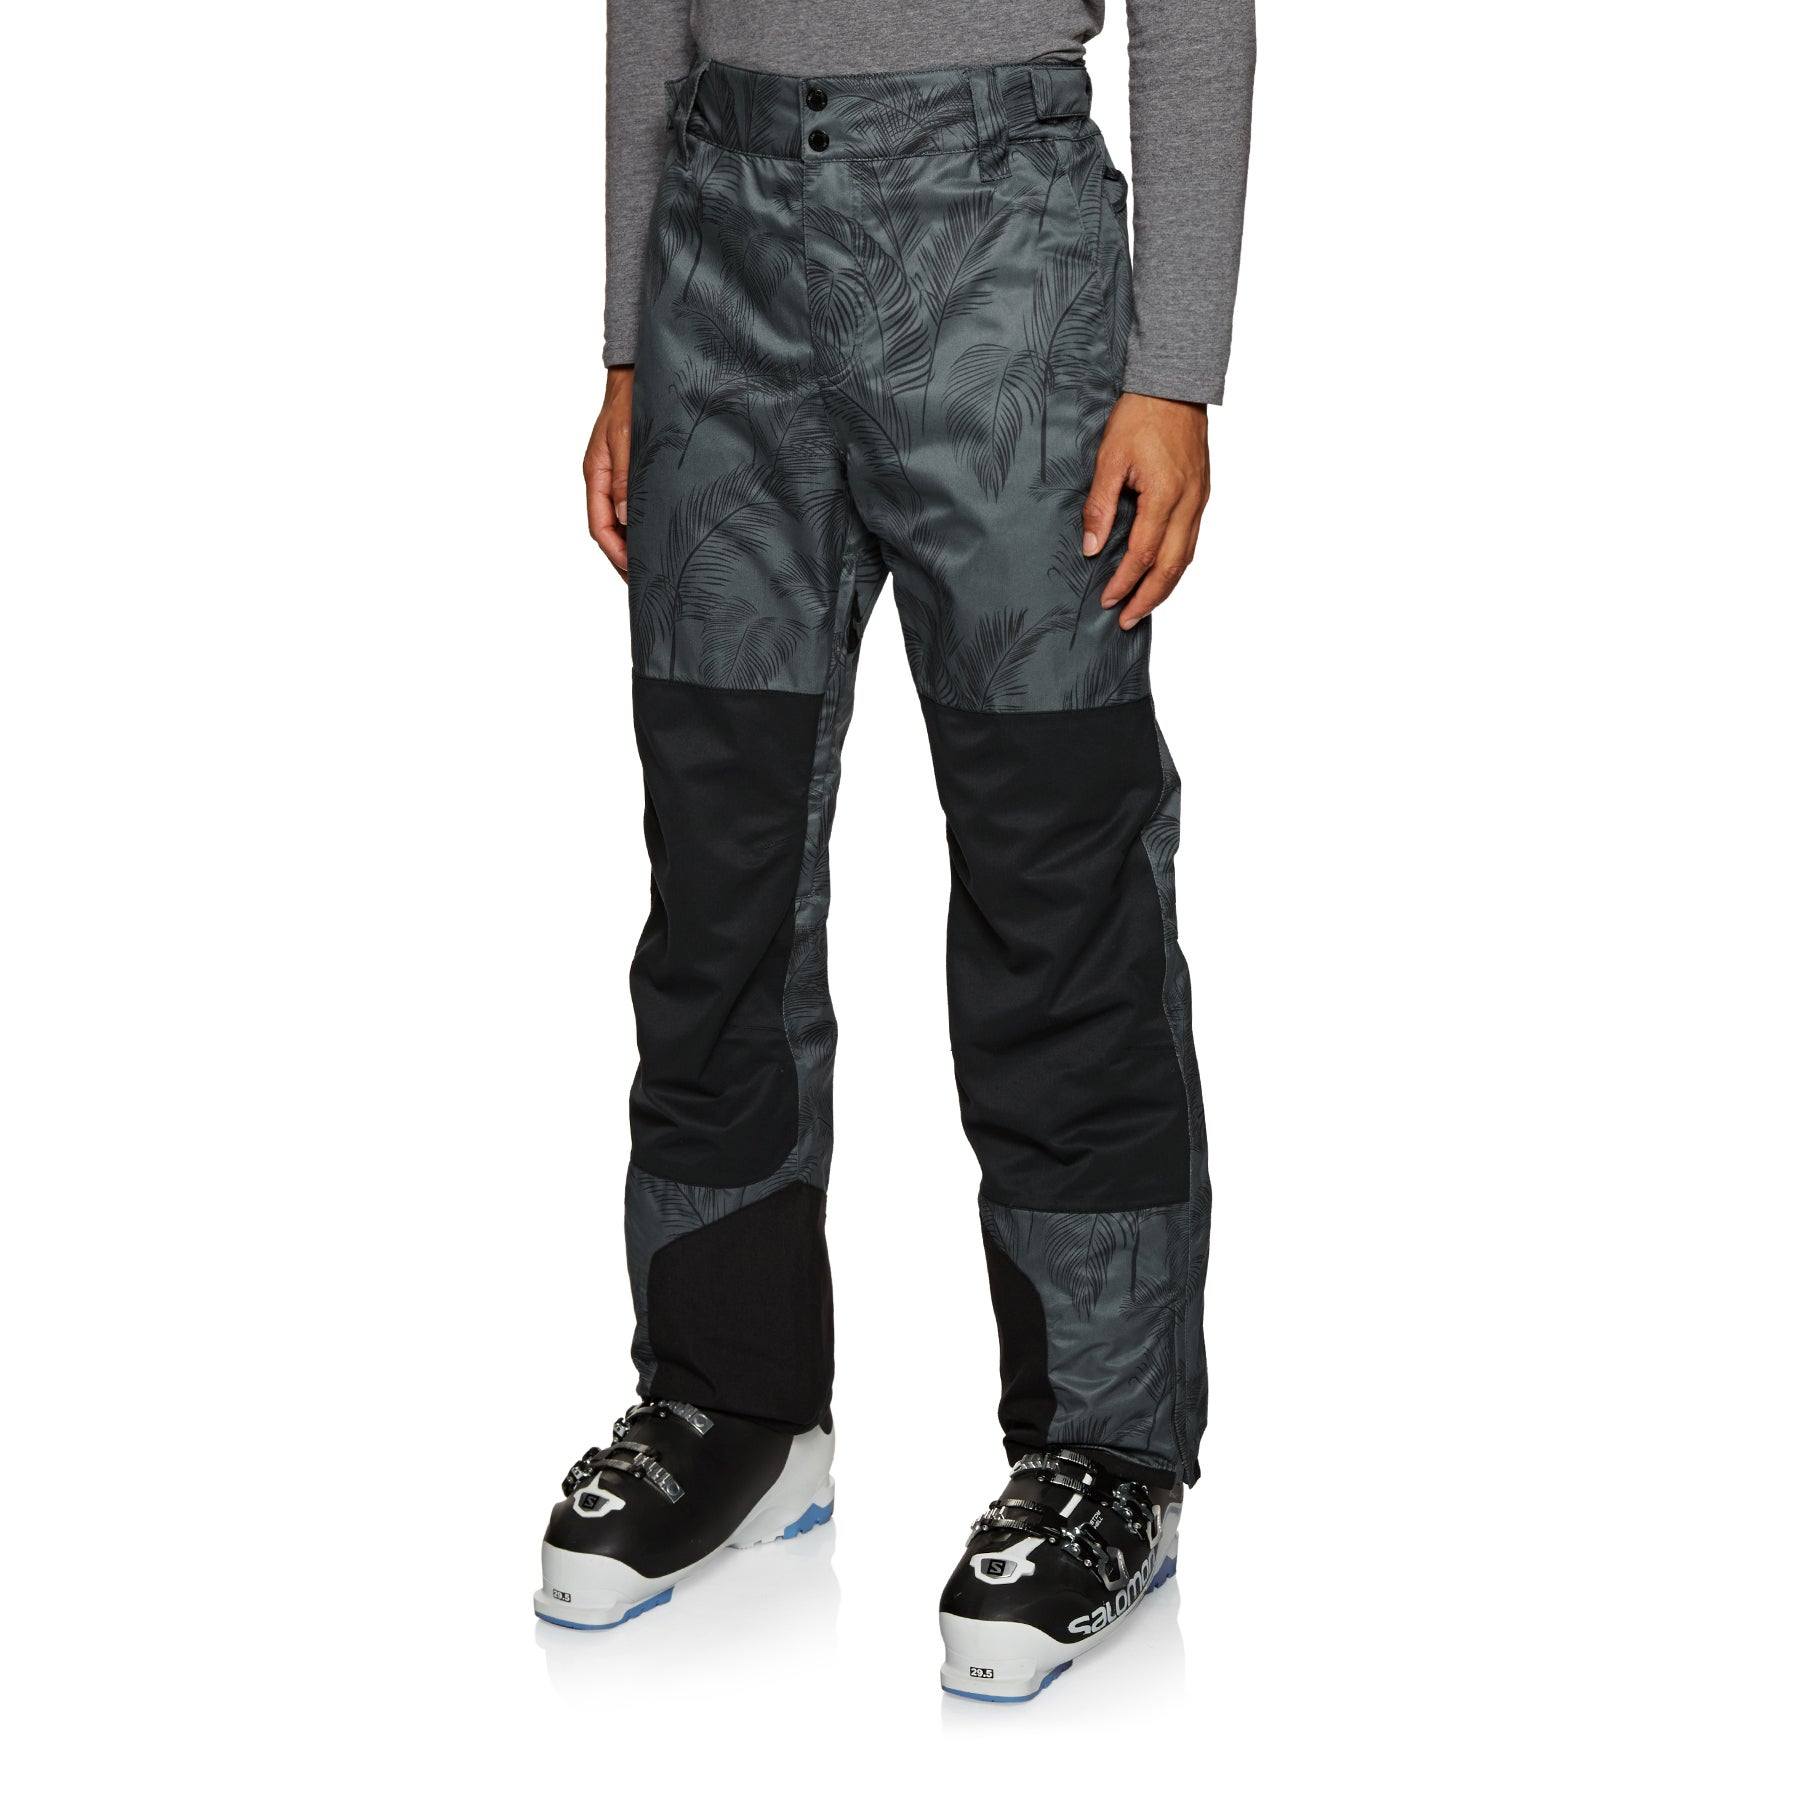 Planks Feel Good Snow Pant - Midnight Palm